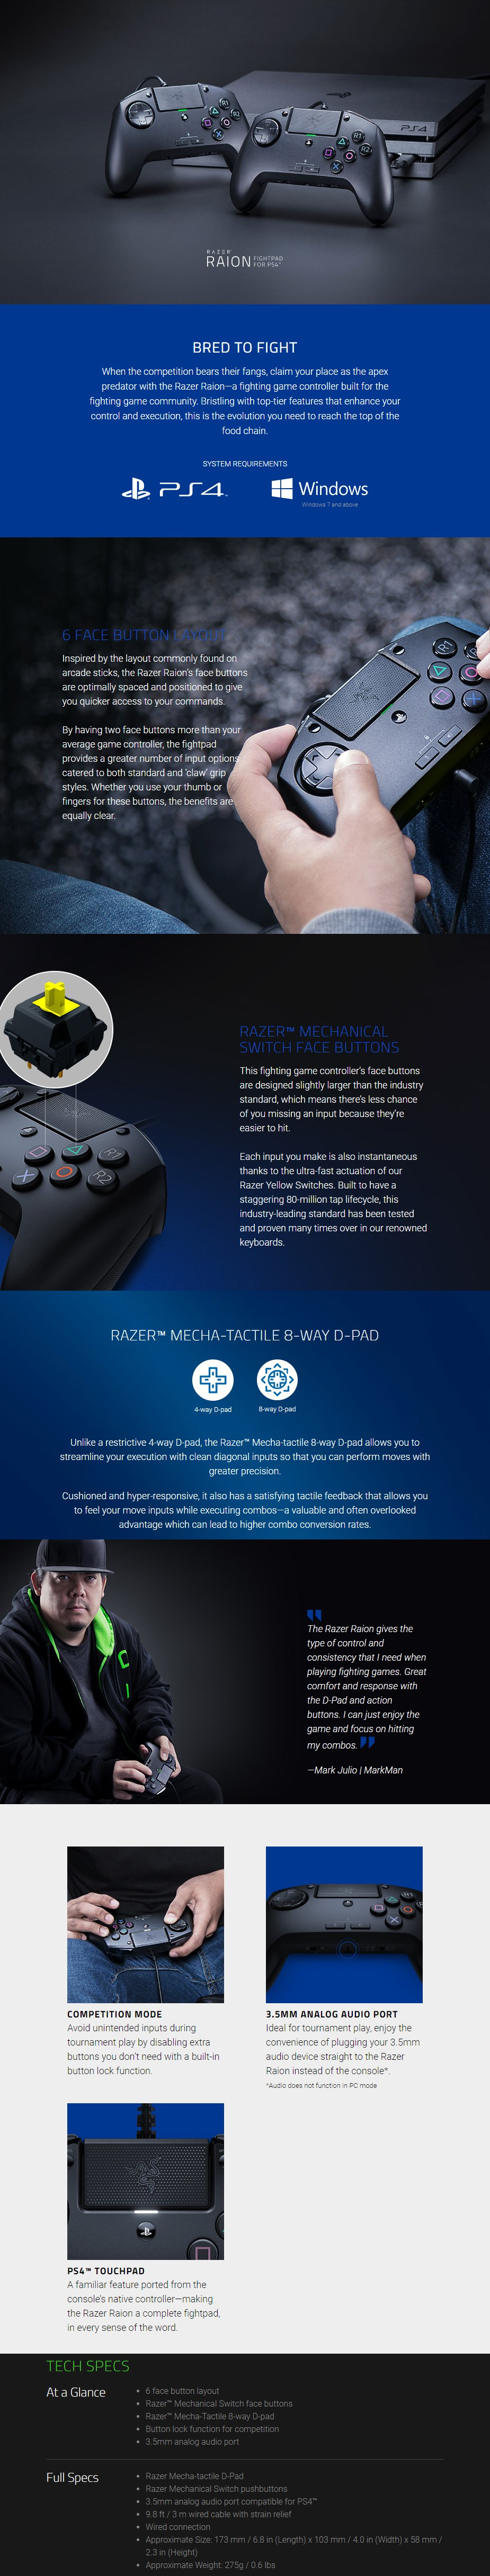 Razer Raion Fightpad Controller for PS4 - Overview 1